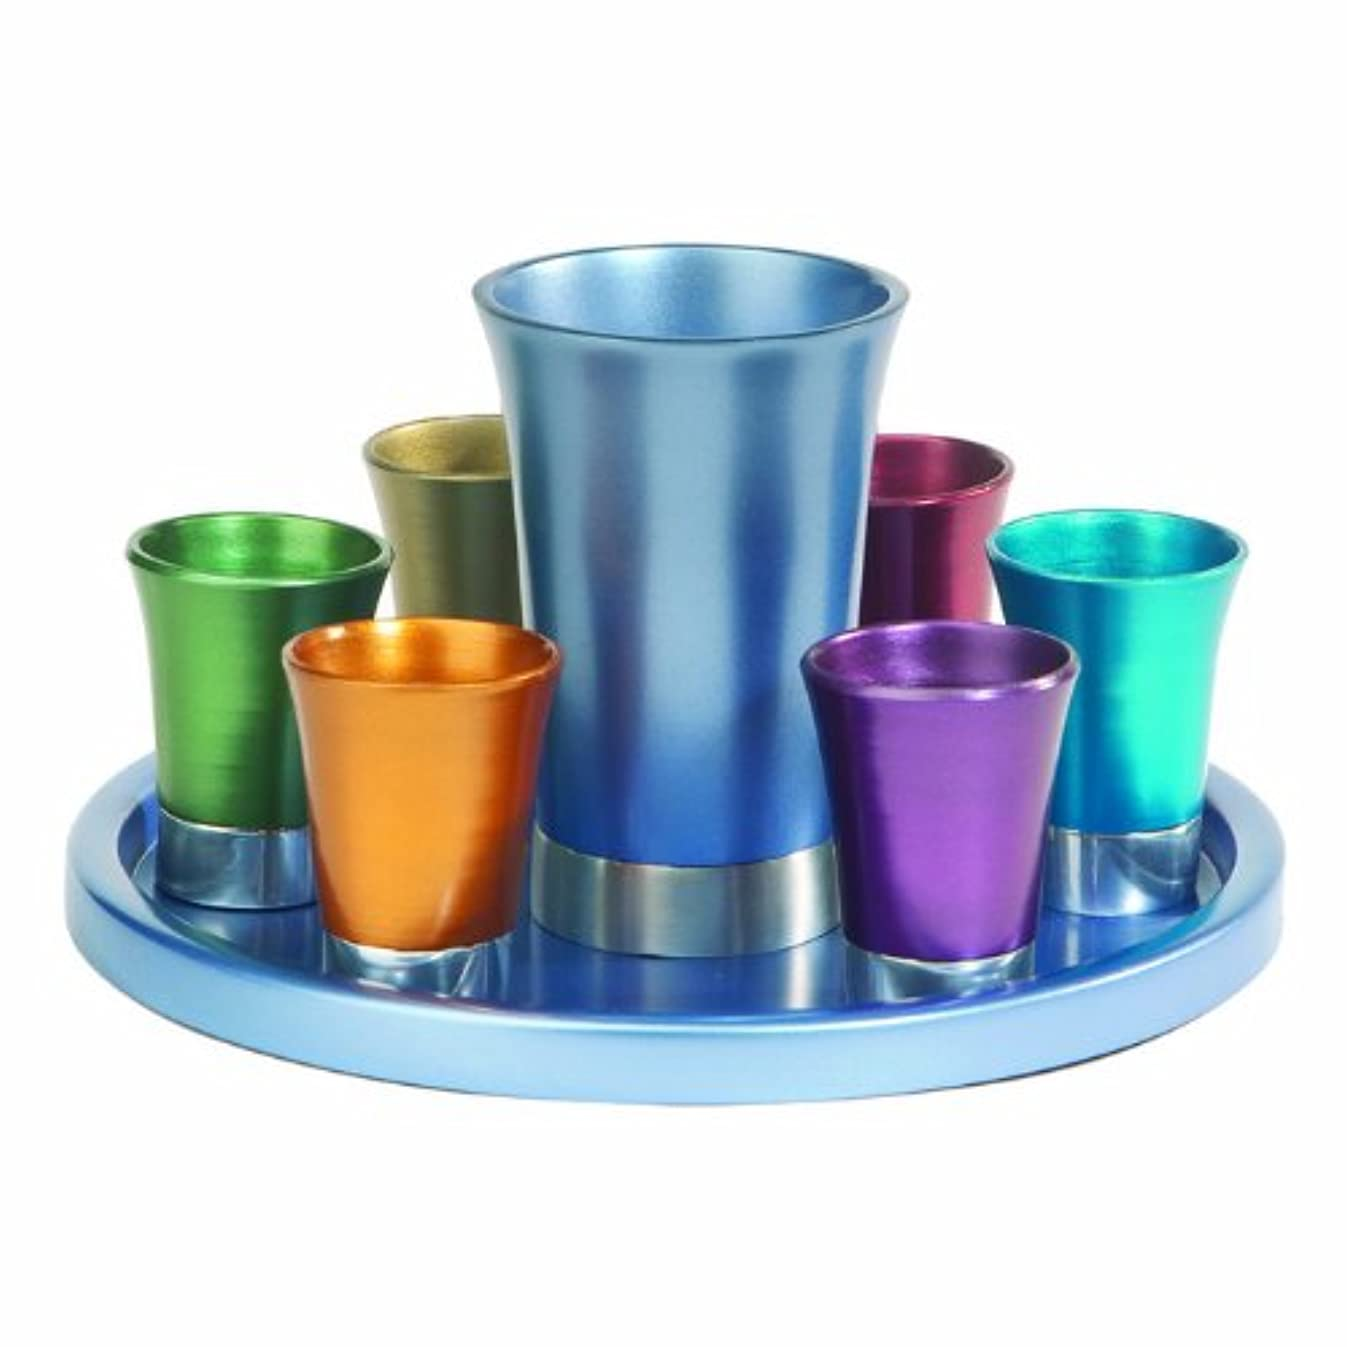 Yair Emanuel Multicolored Anodized Aluminum Kiddush Set with Tray (GSS-5)